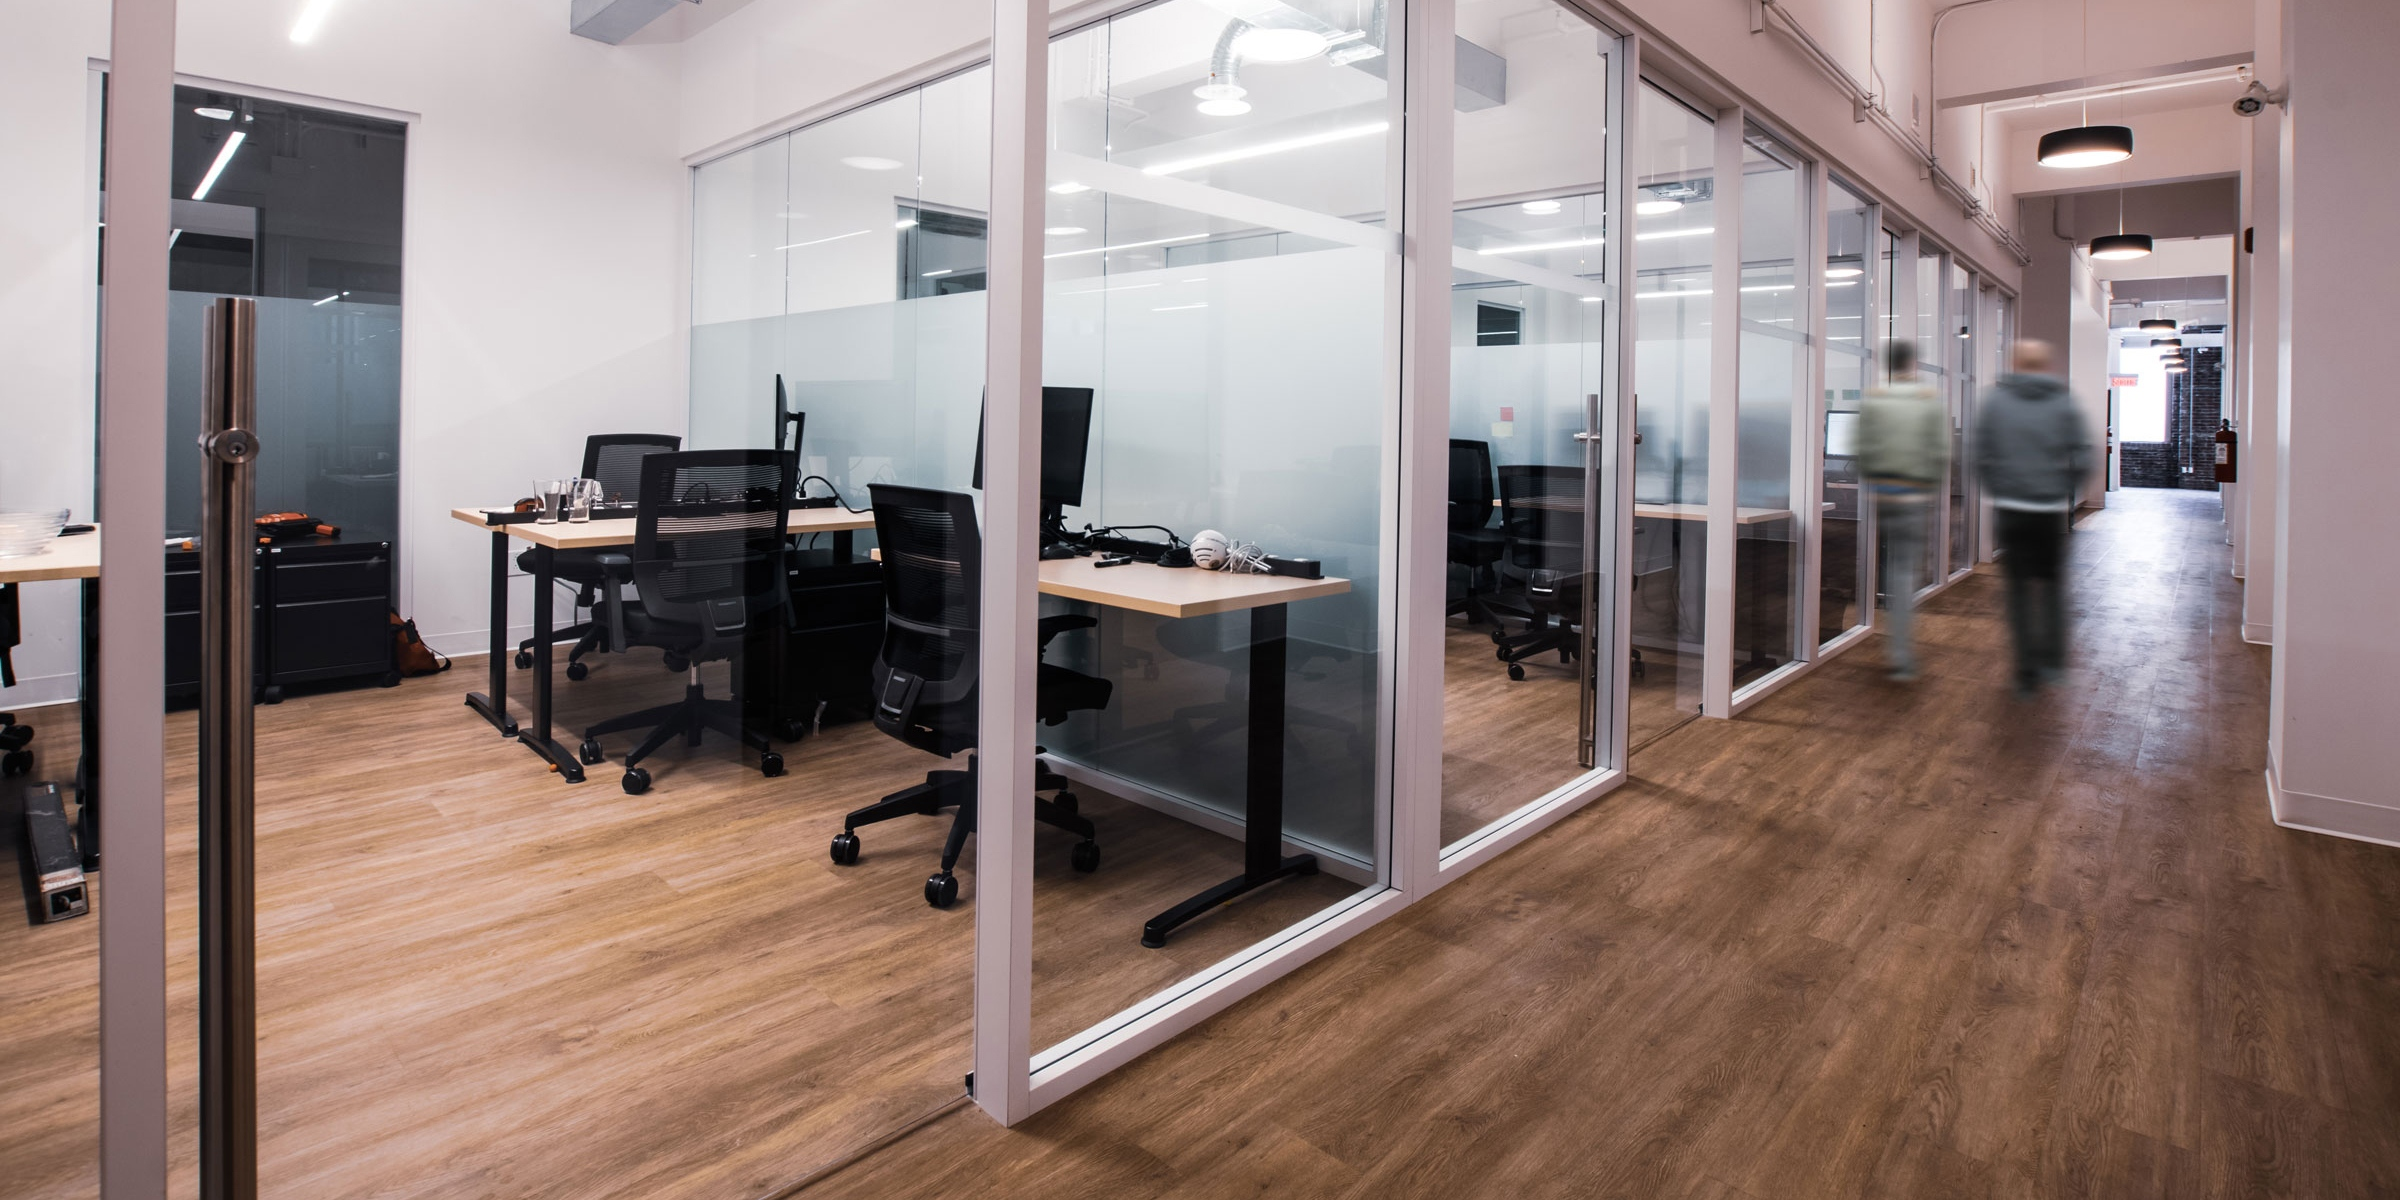 Starwall offices creating individual workspaces